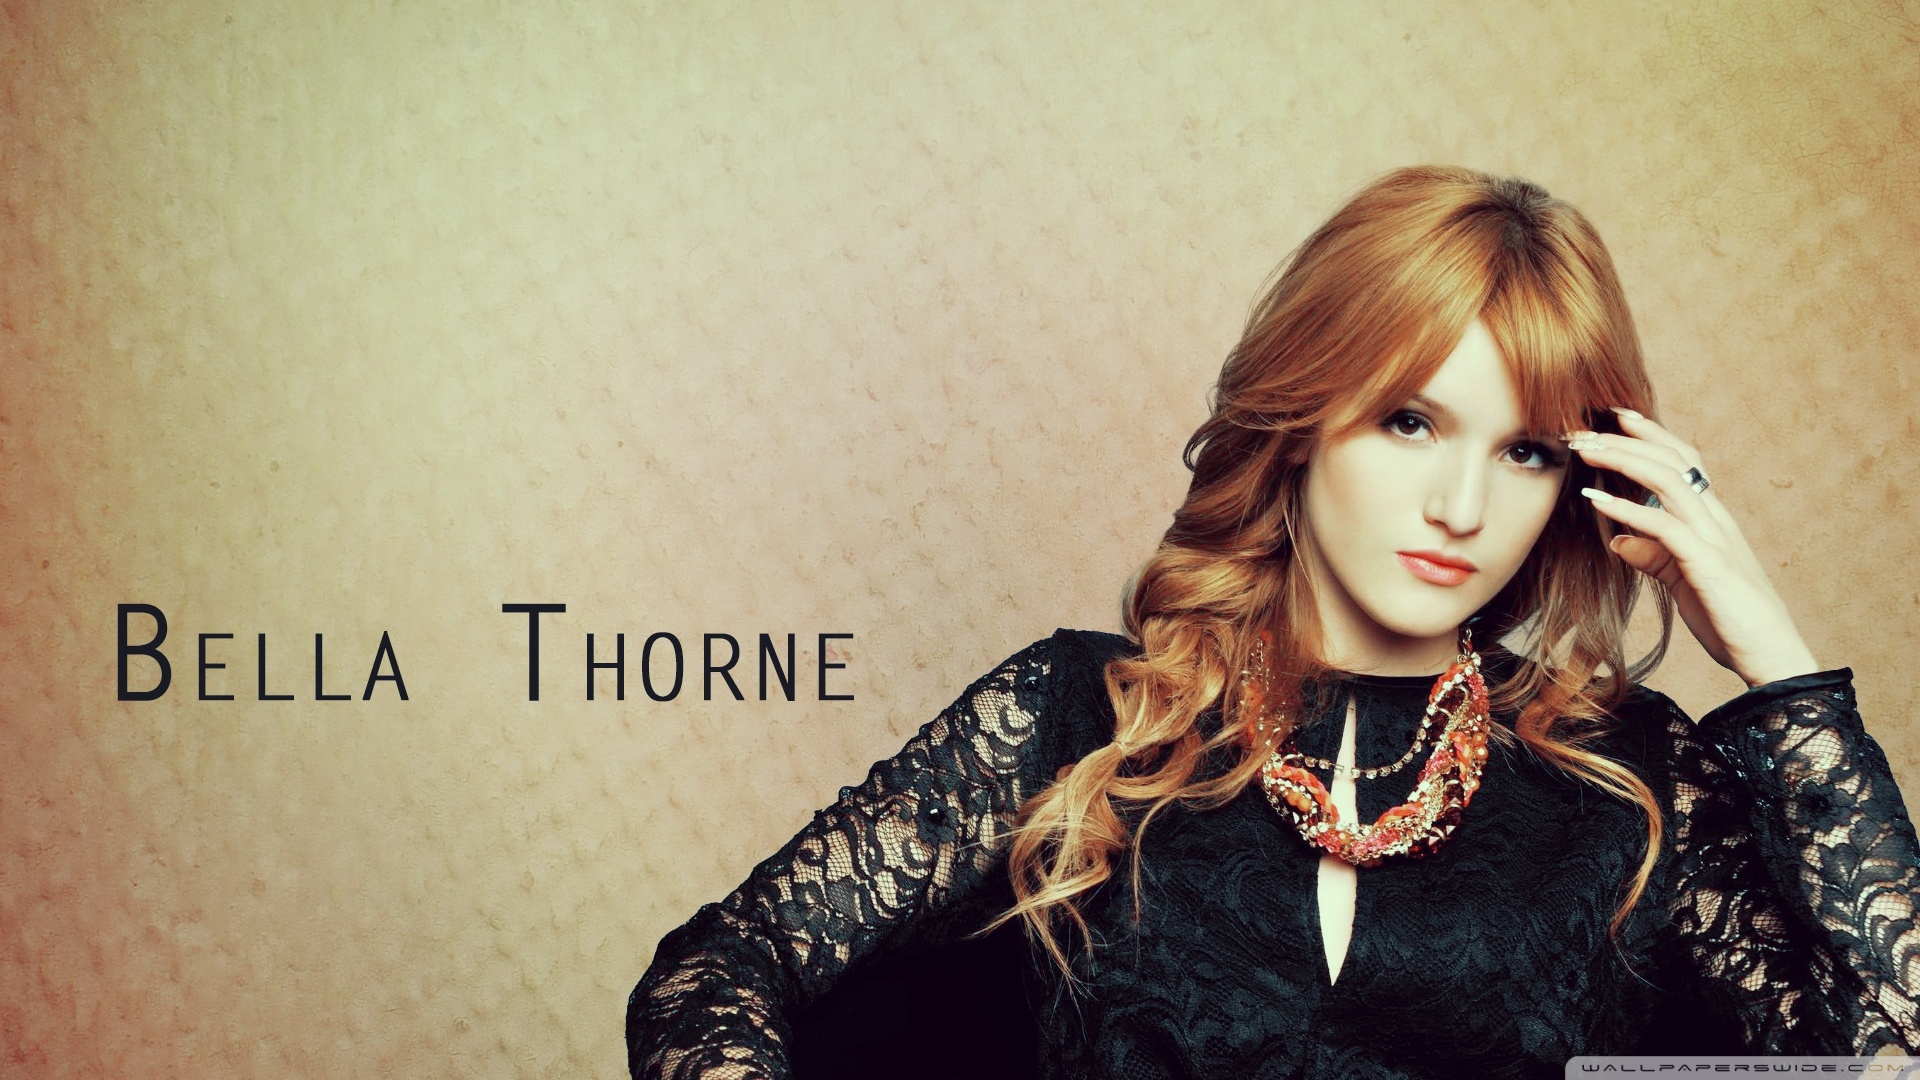 1920x1080 - Bella Thorne Wallpapers 3